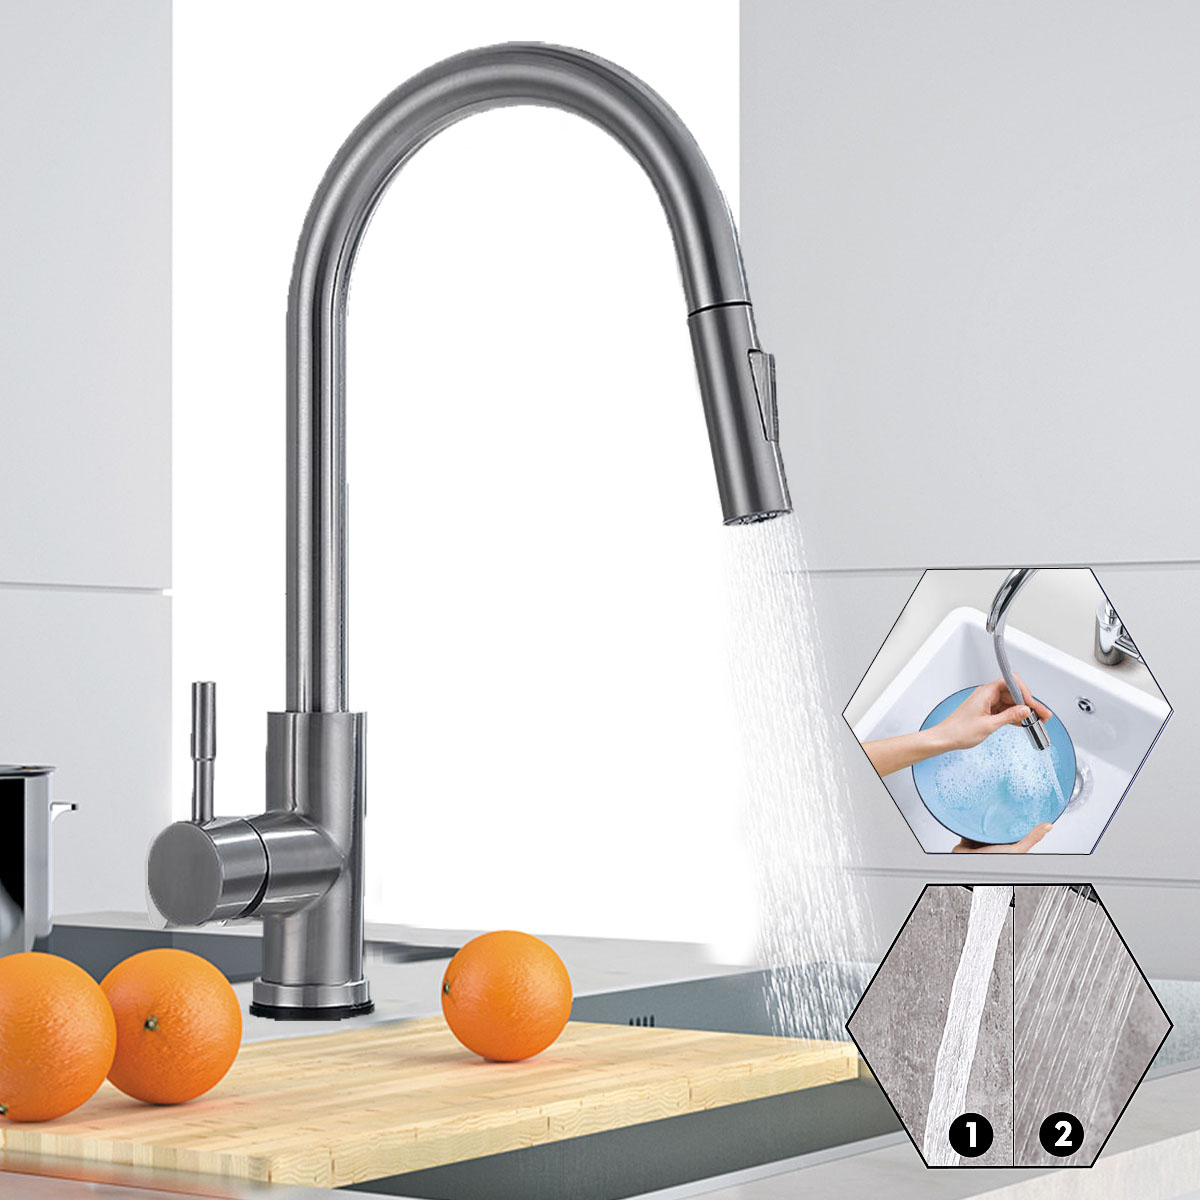 stoneway kitchen faucet with pull down sprayer swivel brushed nickel single handle high arc pull out spray nozzle kitchen sink faucet